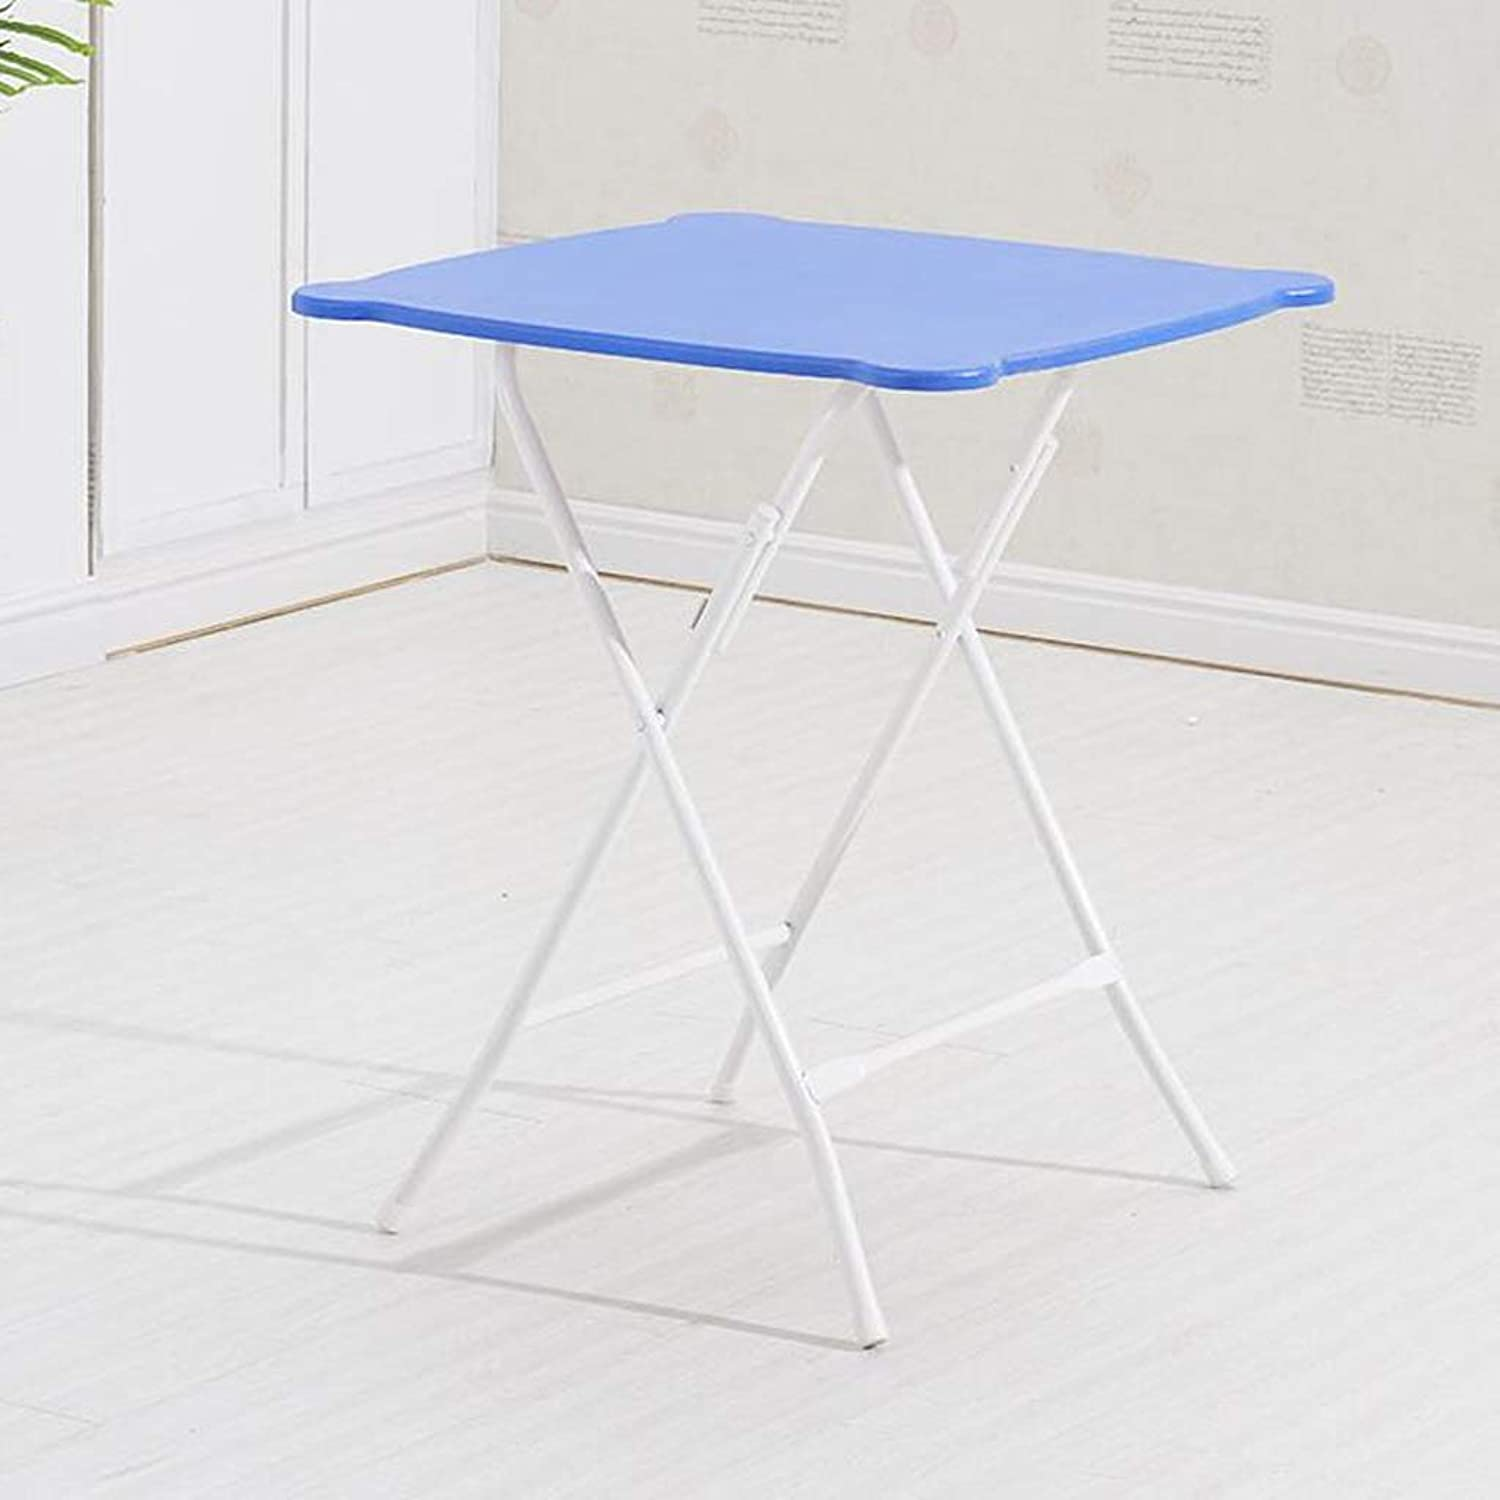 HBJP Folding Table Dining Table Home Simple Small Apartment Portable Table Square Round Small Table Multi-color Optional Folding Table (color   C)